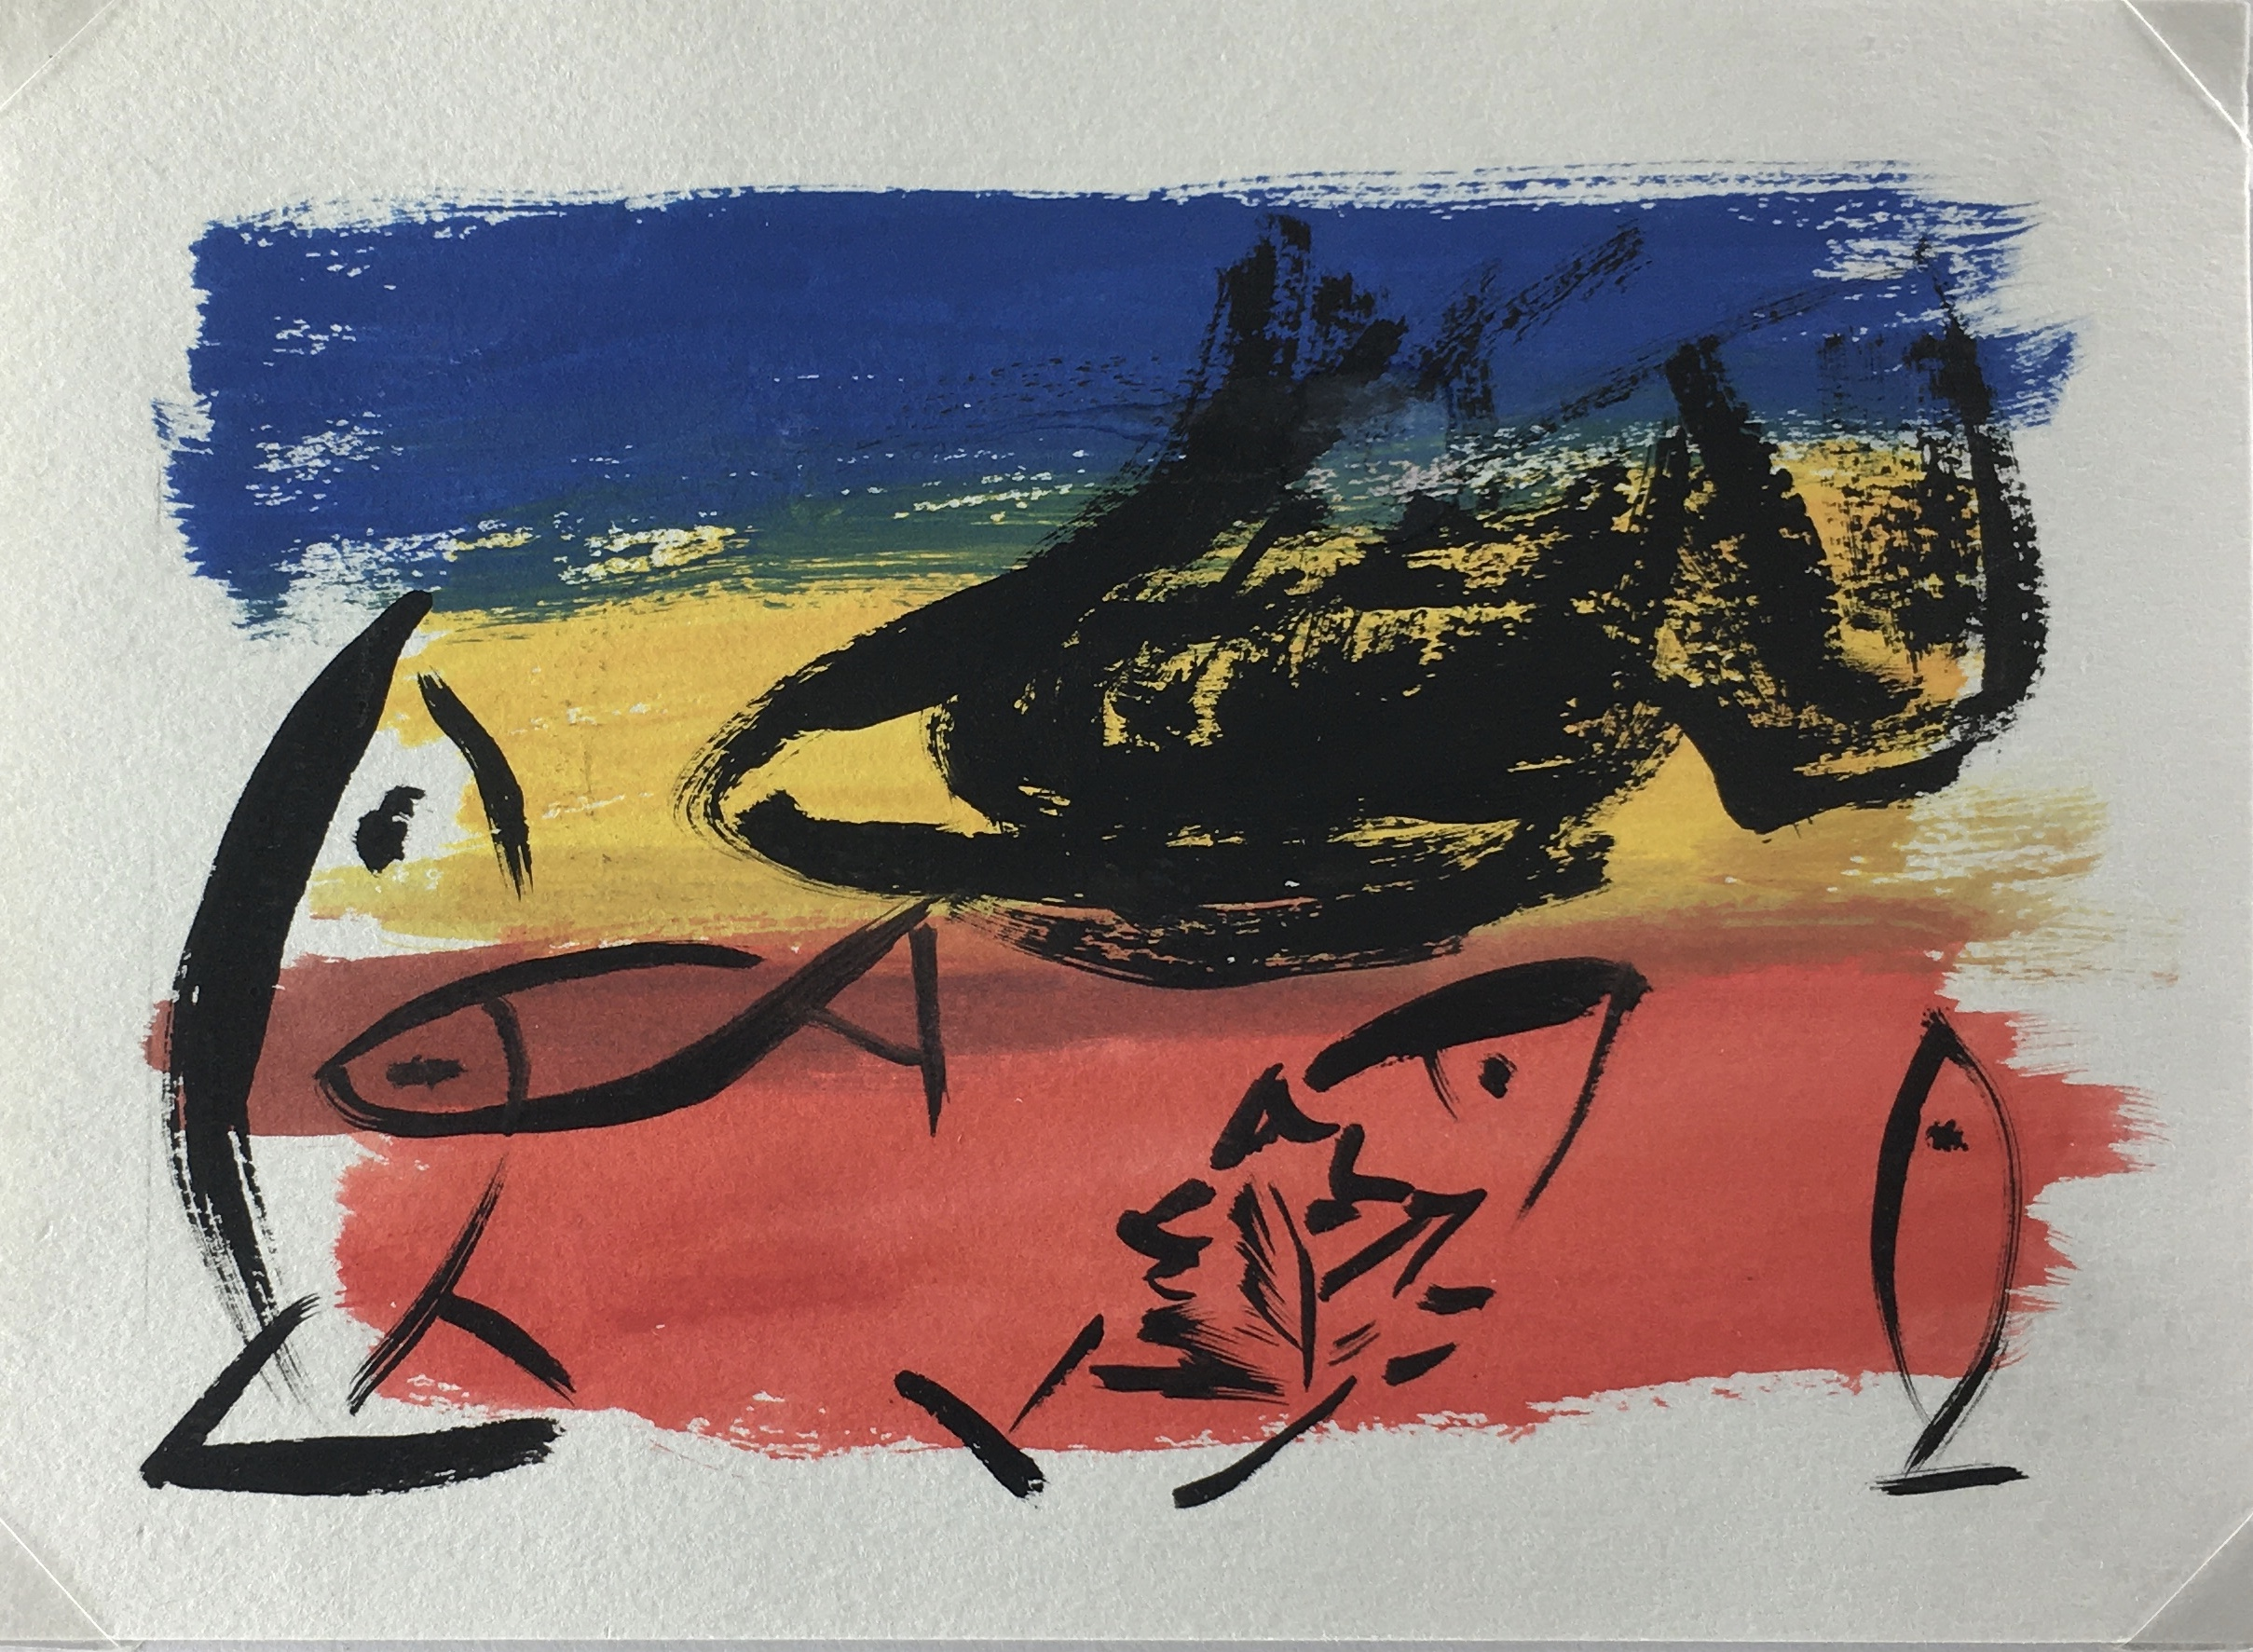 Animals Fish & Fishing Original Art - Tricolored Fish, 2000